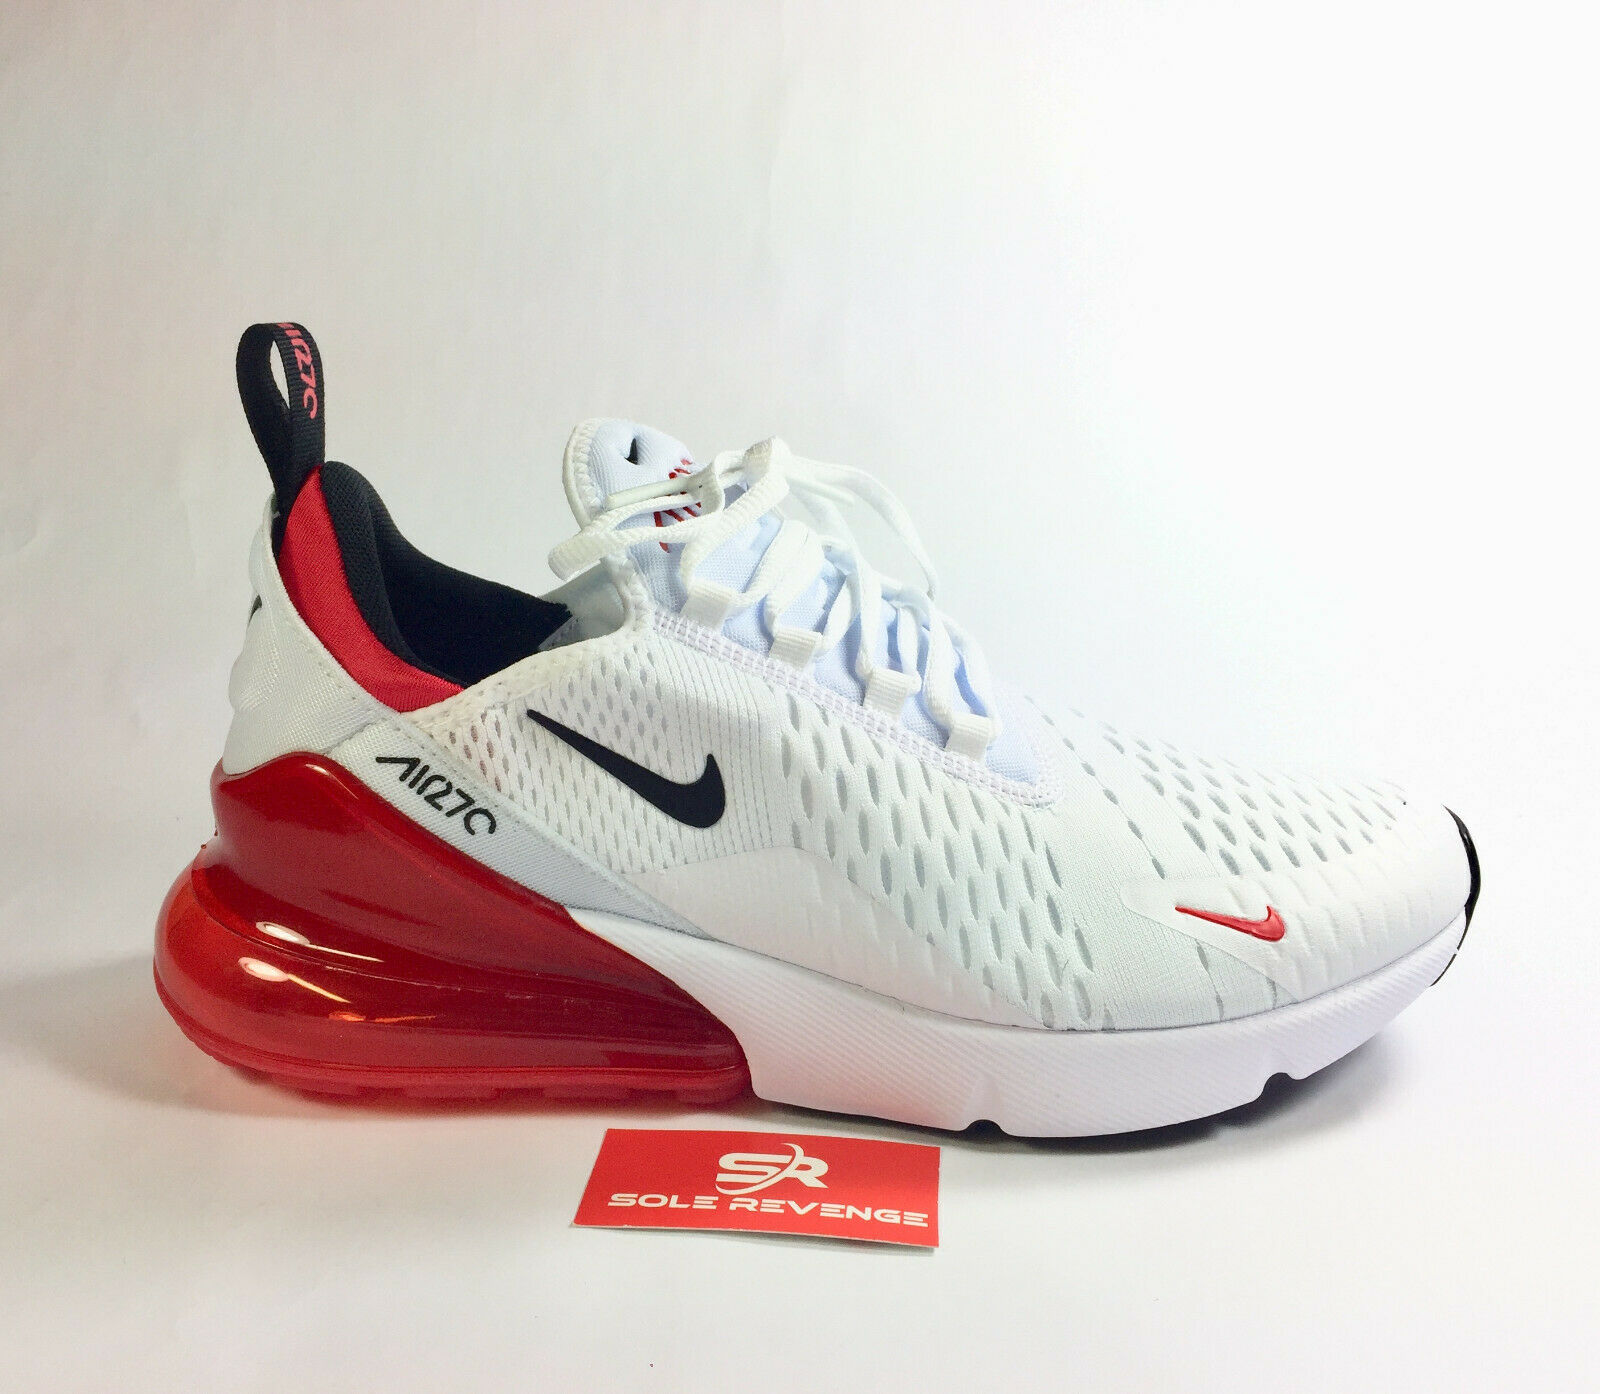 Shoes Bv2523 Red Nike S1 100 Air Mens New Whiteblackuniversity 270 Max l1FK3cuTJ